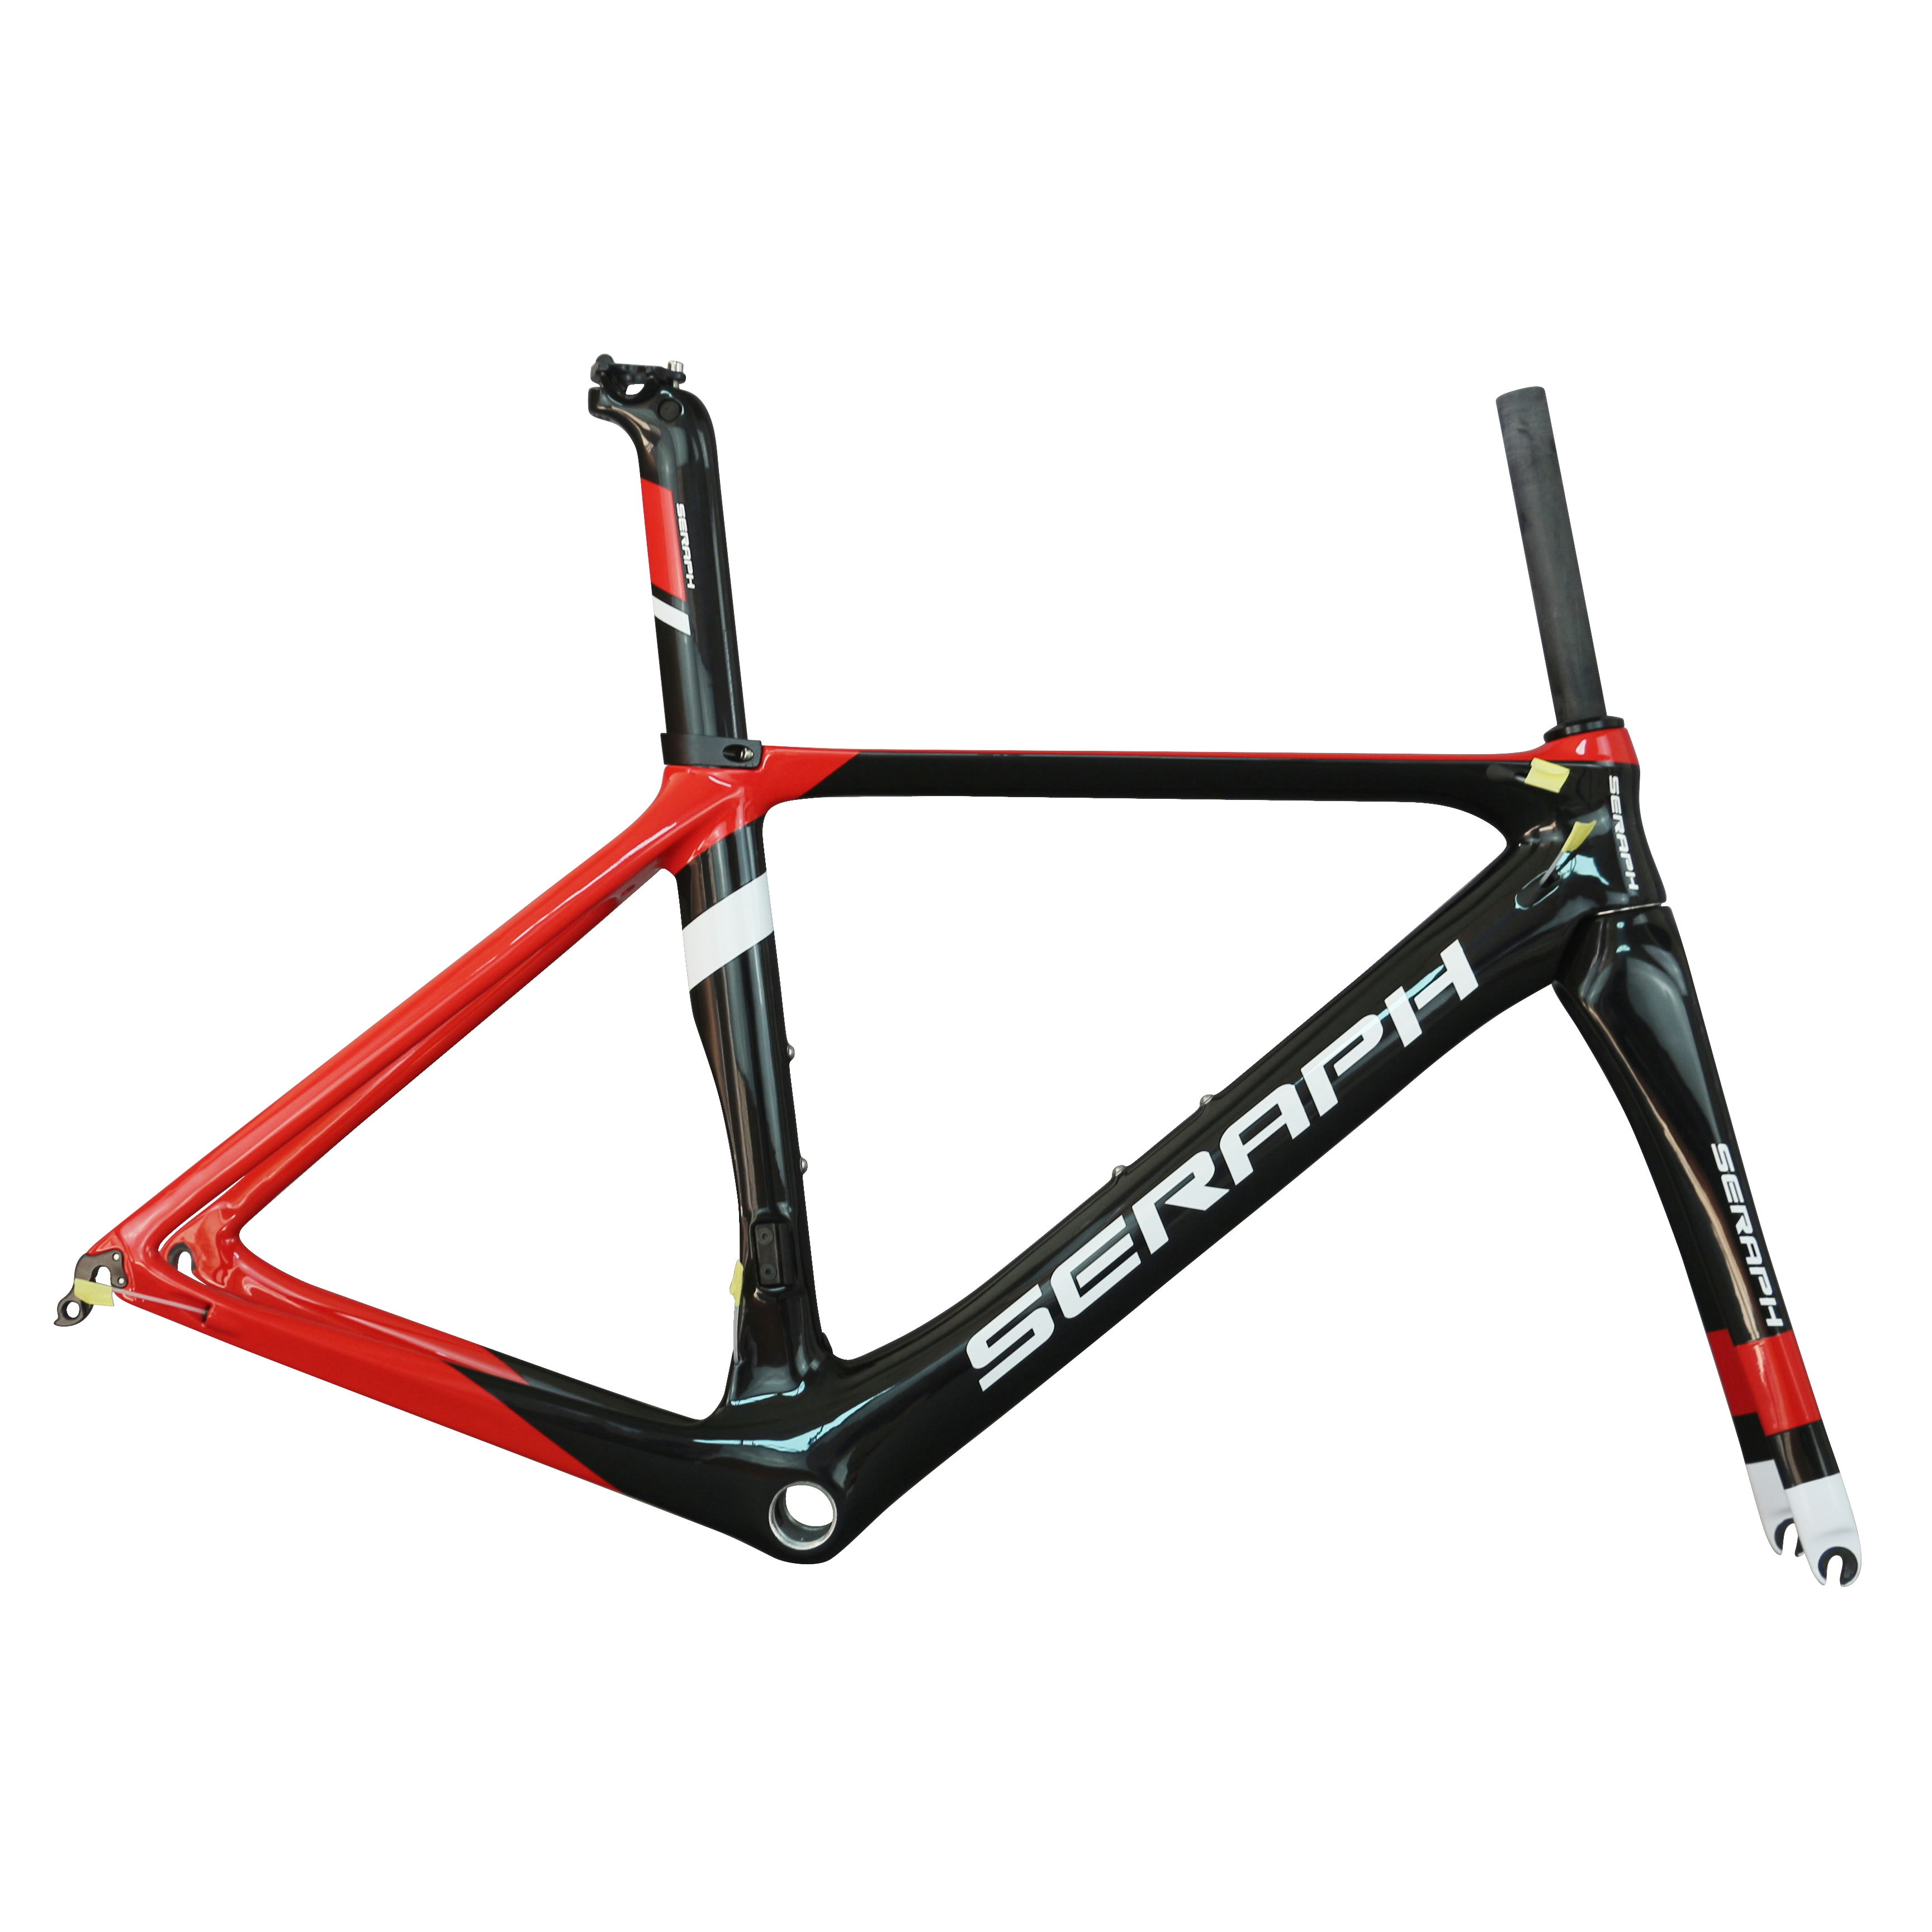 Customized SERAPH Carbon Fiber T700 Frame BB86 Glossy Carbon Road Frame FM268